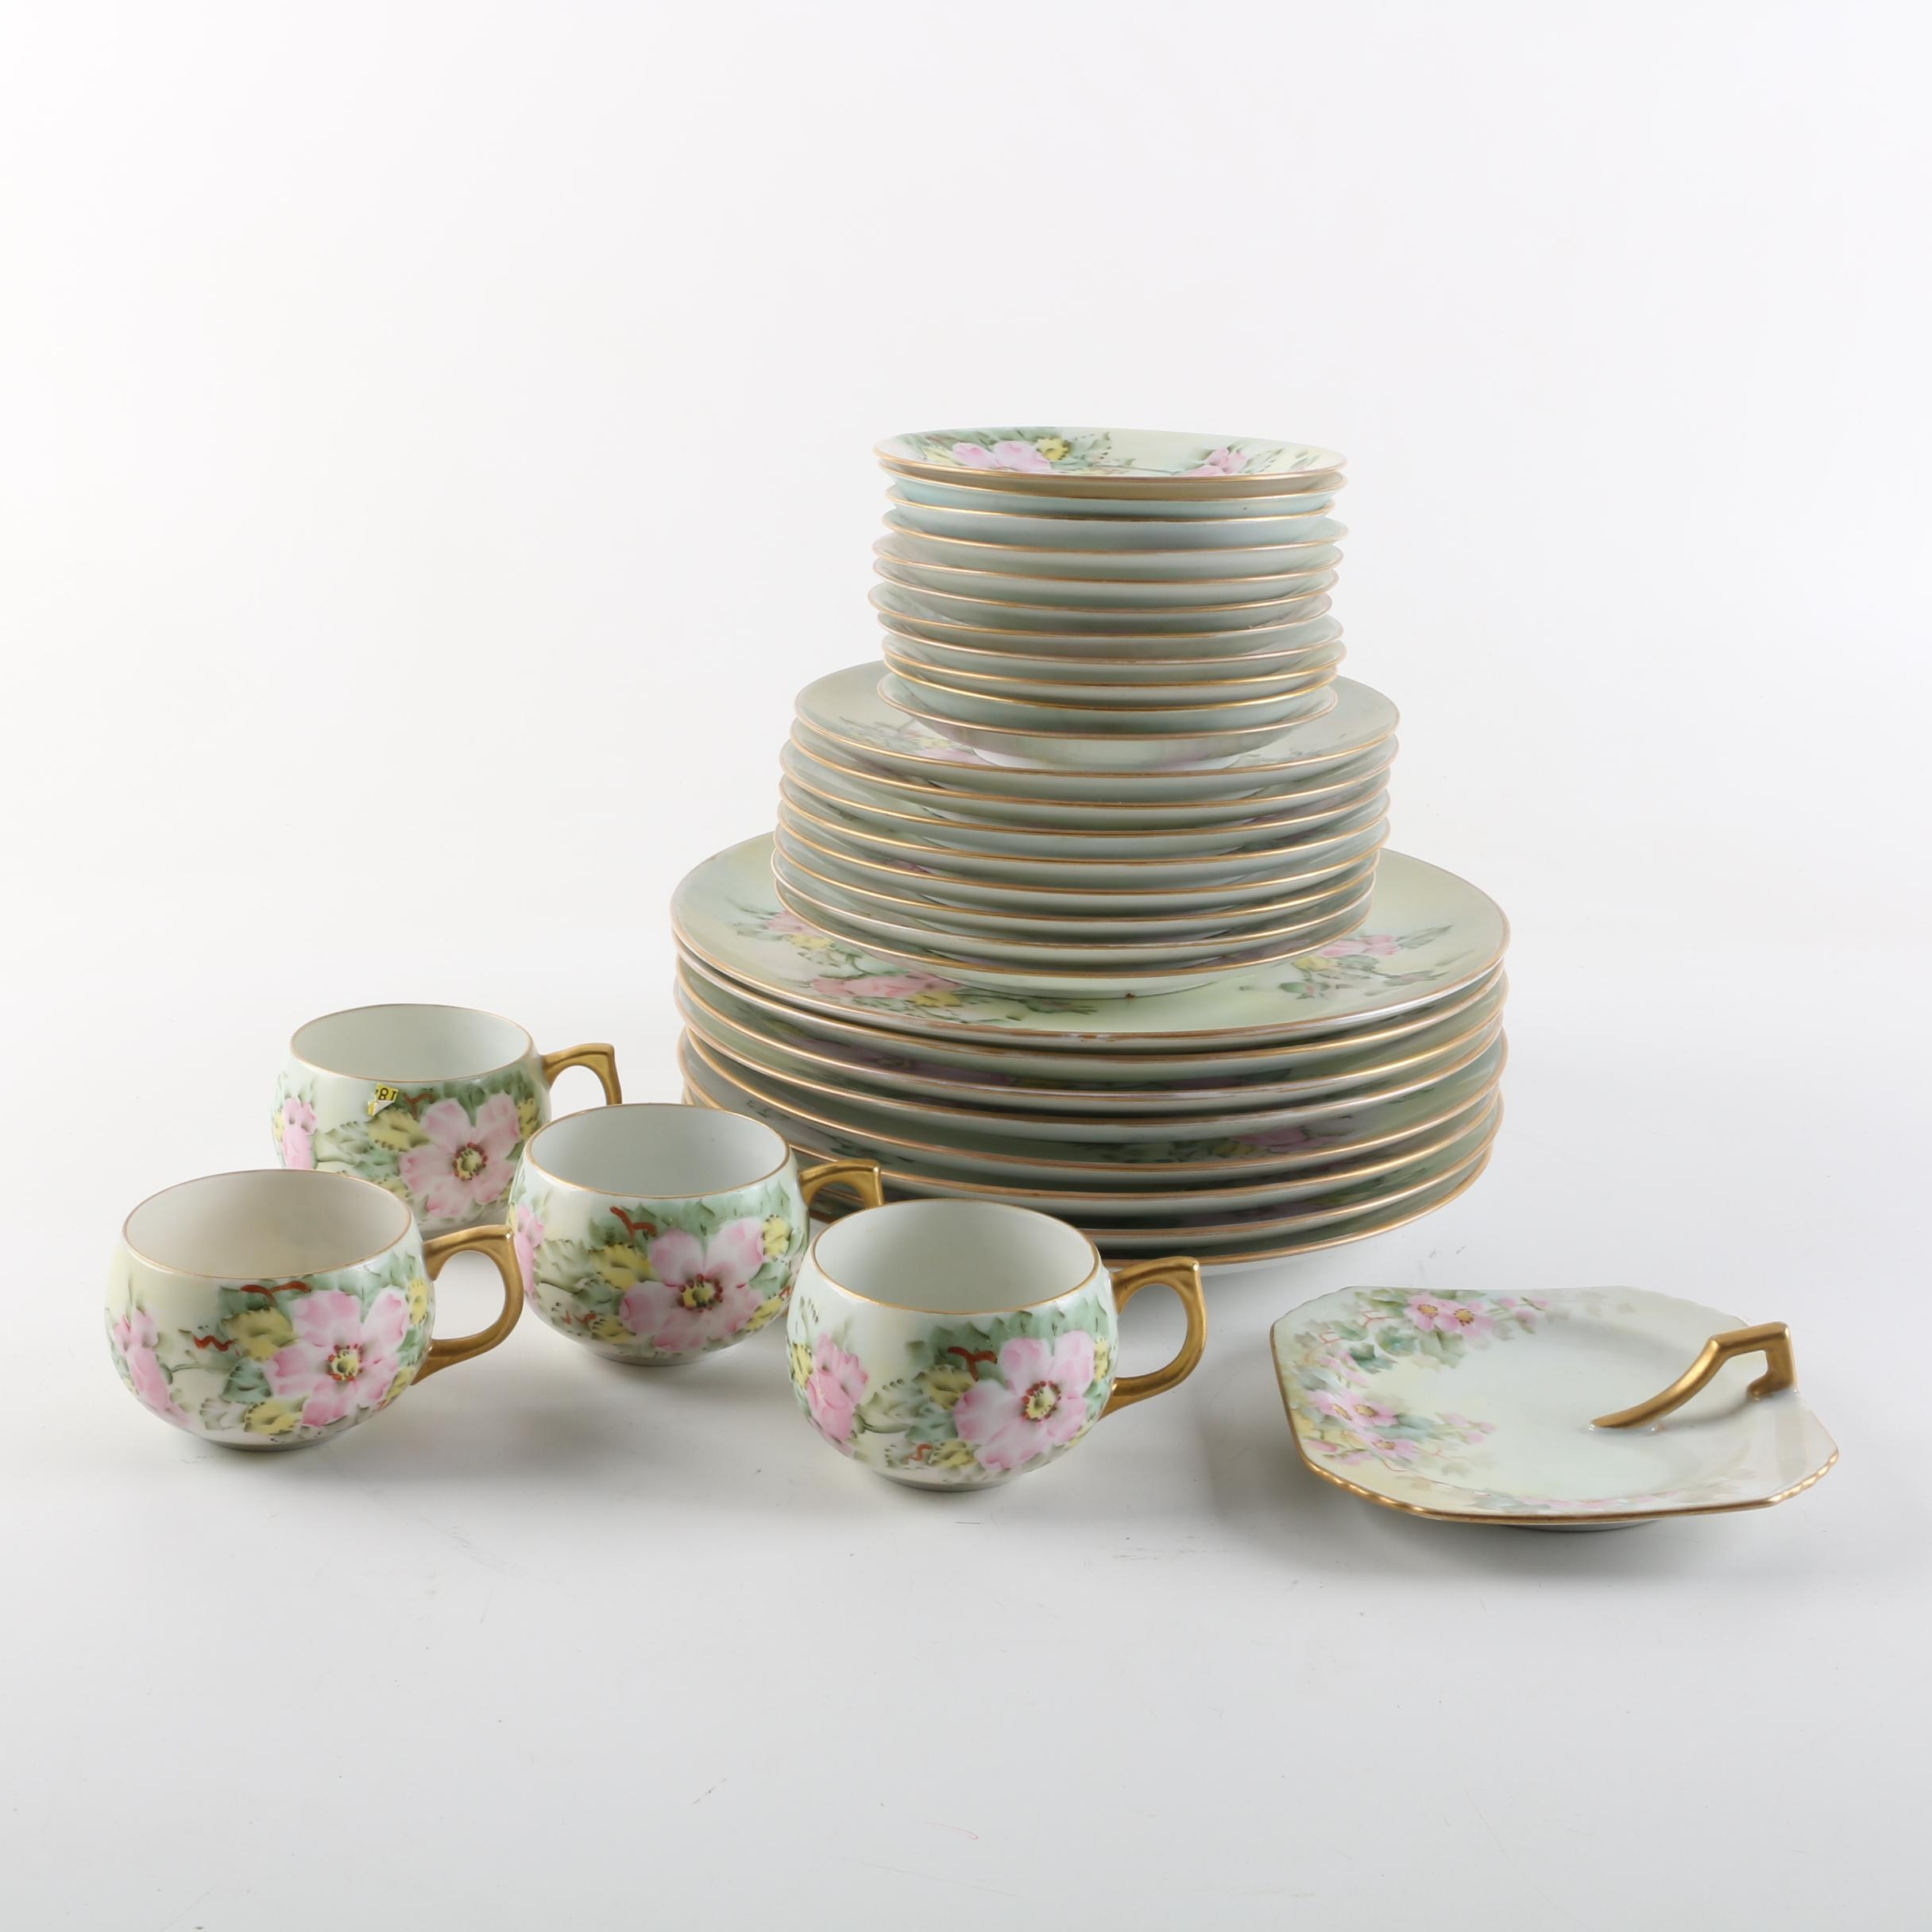 Antique Hand Painted Porcelain Tableware